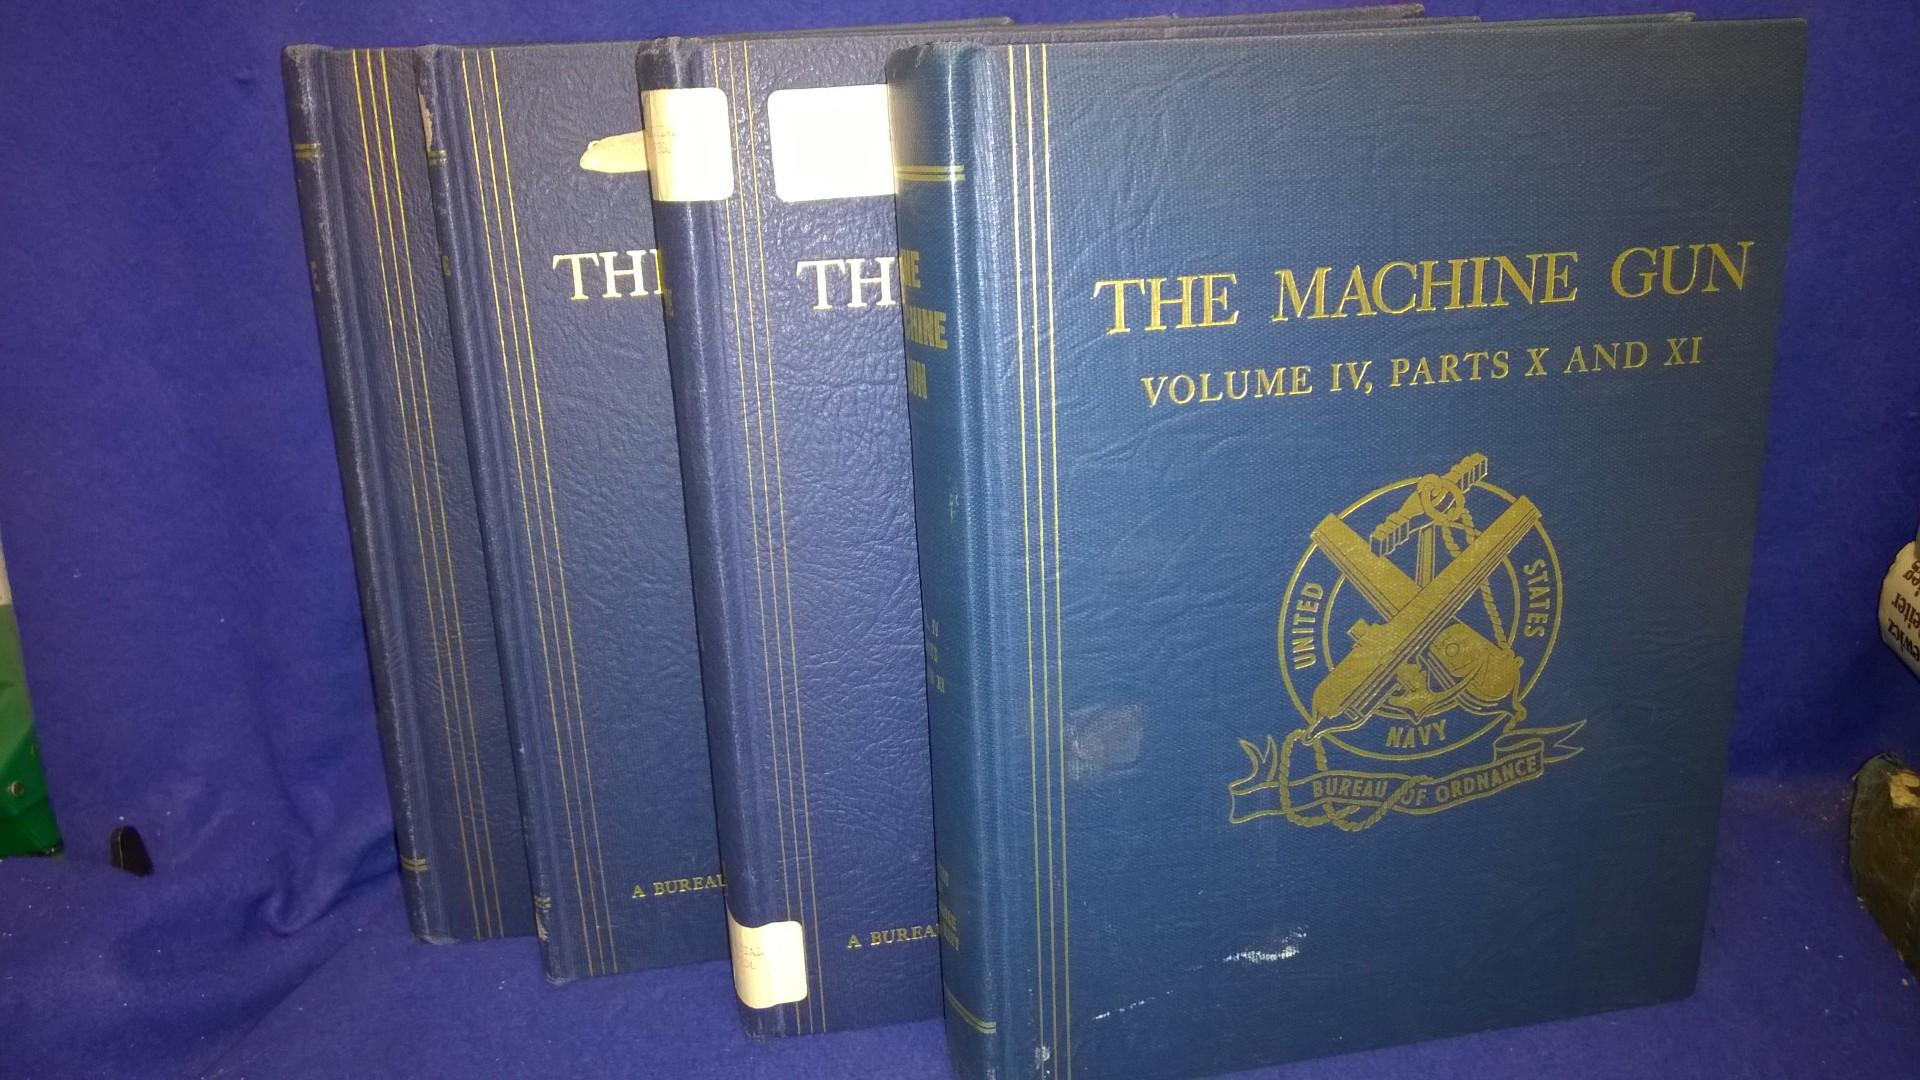 The Machine Gun. History, Evolution, and Development of Manual, Automatic, and Airborne Repeating Weapons, Volume 1-4, so komplett! Seltene Erstausgabe!